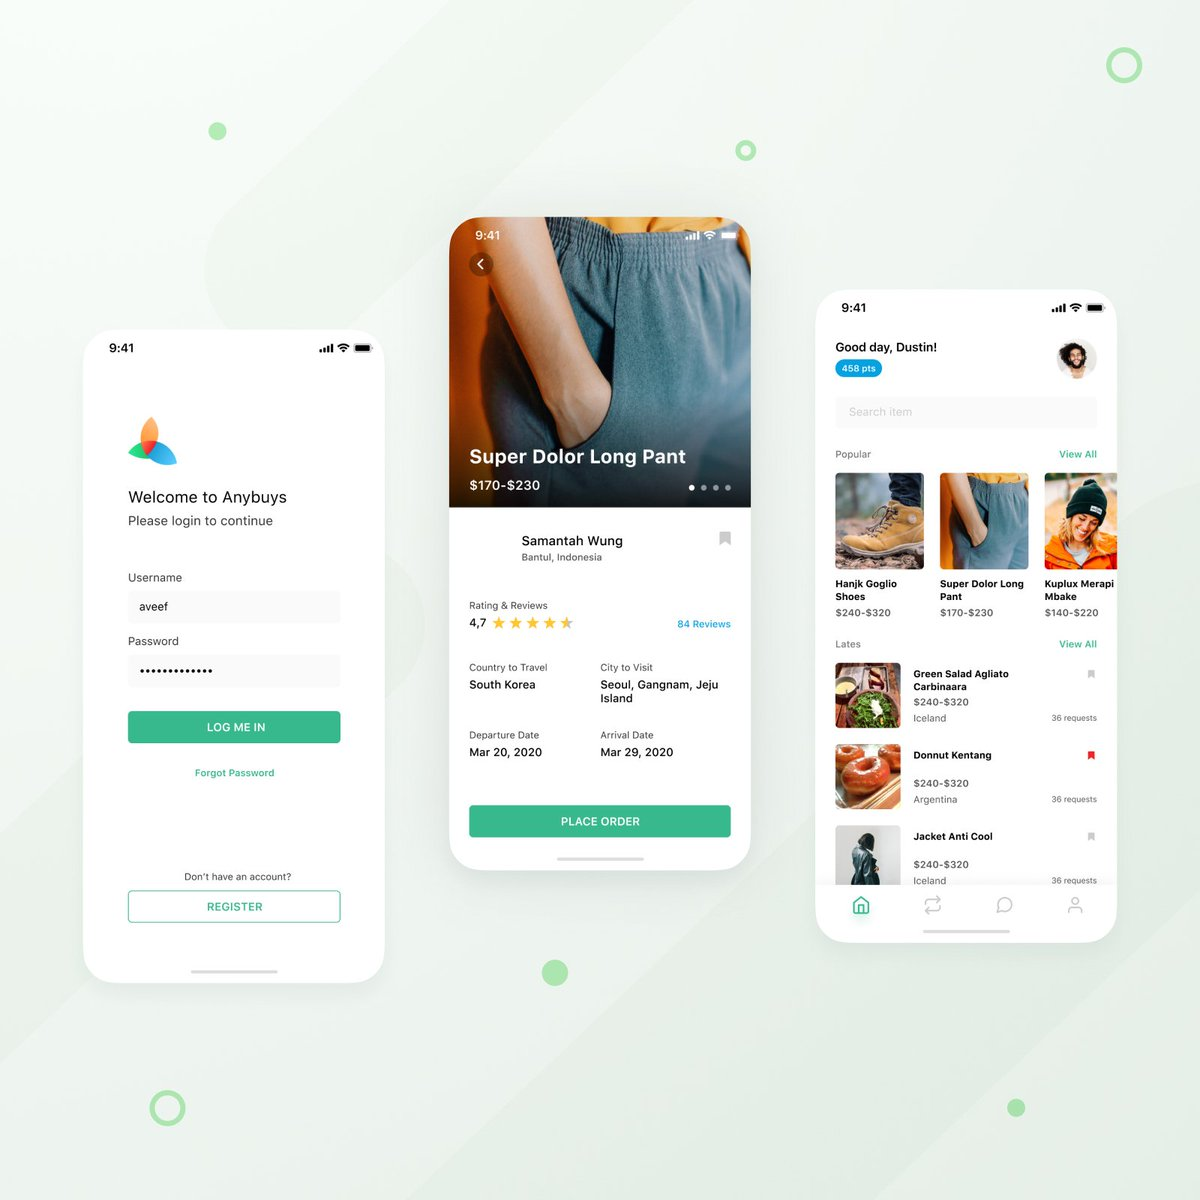 Our design director @aveef is the artist behind our design exploration at Anybuys Mobile App #userinterfacedesign #uidesigner #uxigers #designinspiration #uiinspiration #interface #dailyui #uidesignpatterns #portfolio #dribbblers #dailyinspiration #uiuxsupply #instauiuxpic.twitter.com/rEBHrtC73f